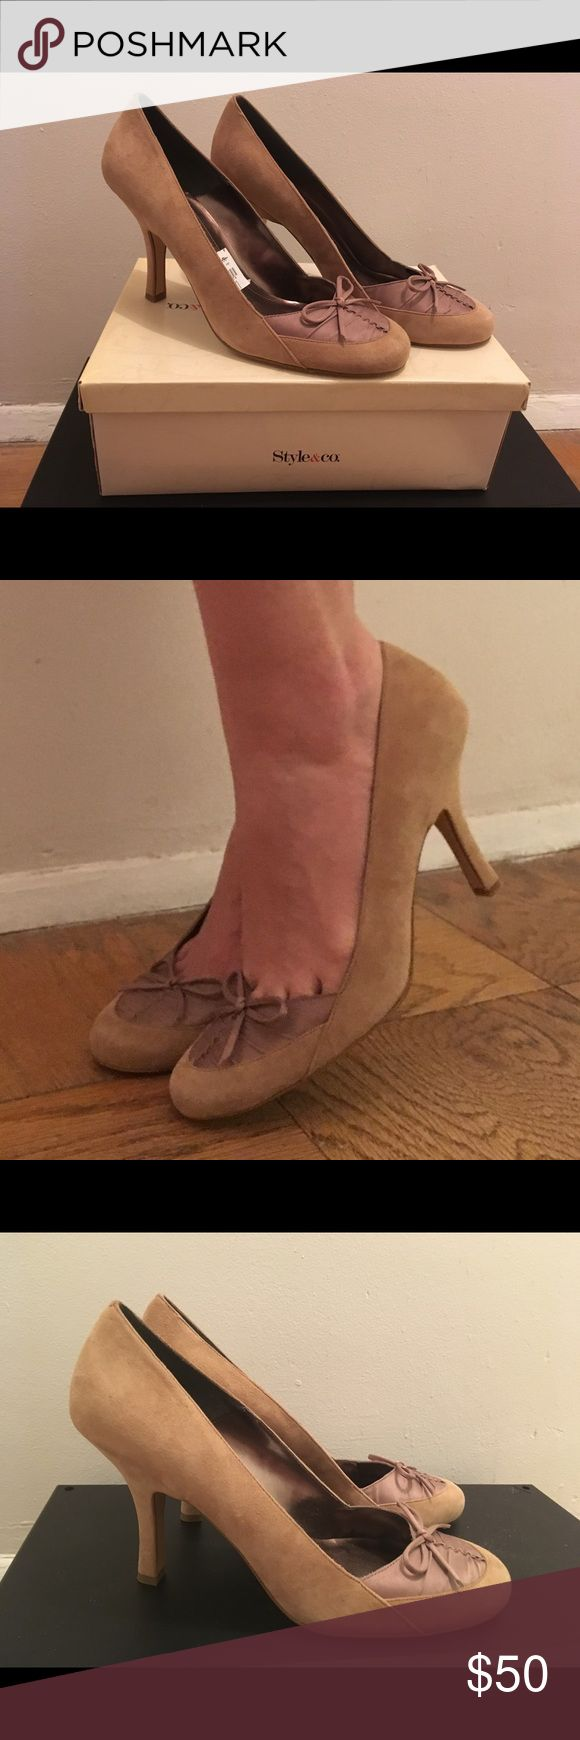 NWT Style & Co Latte Size 11 Pumps Brand new, never worn! Size 11 suede latte (tan, camel) pumps  Leather and fabric upper 3.75 inch heel Style & Co Shoes Heels